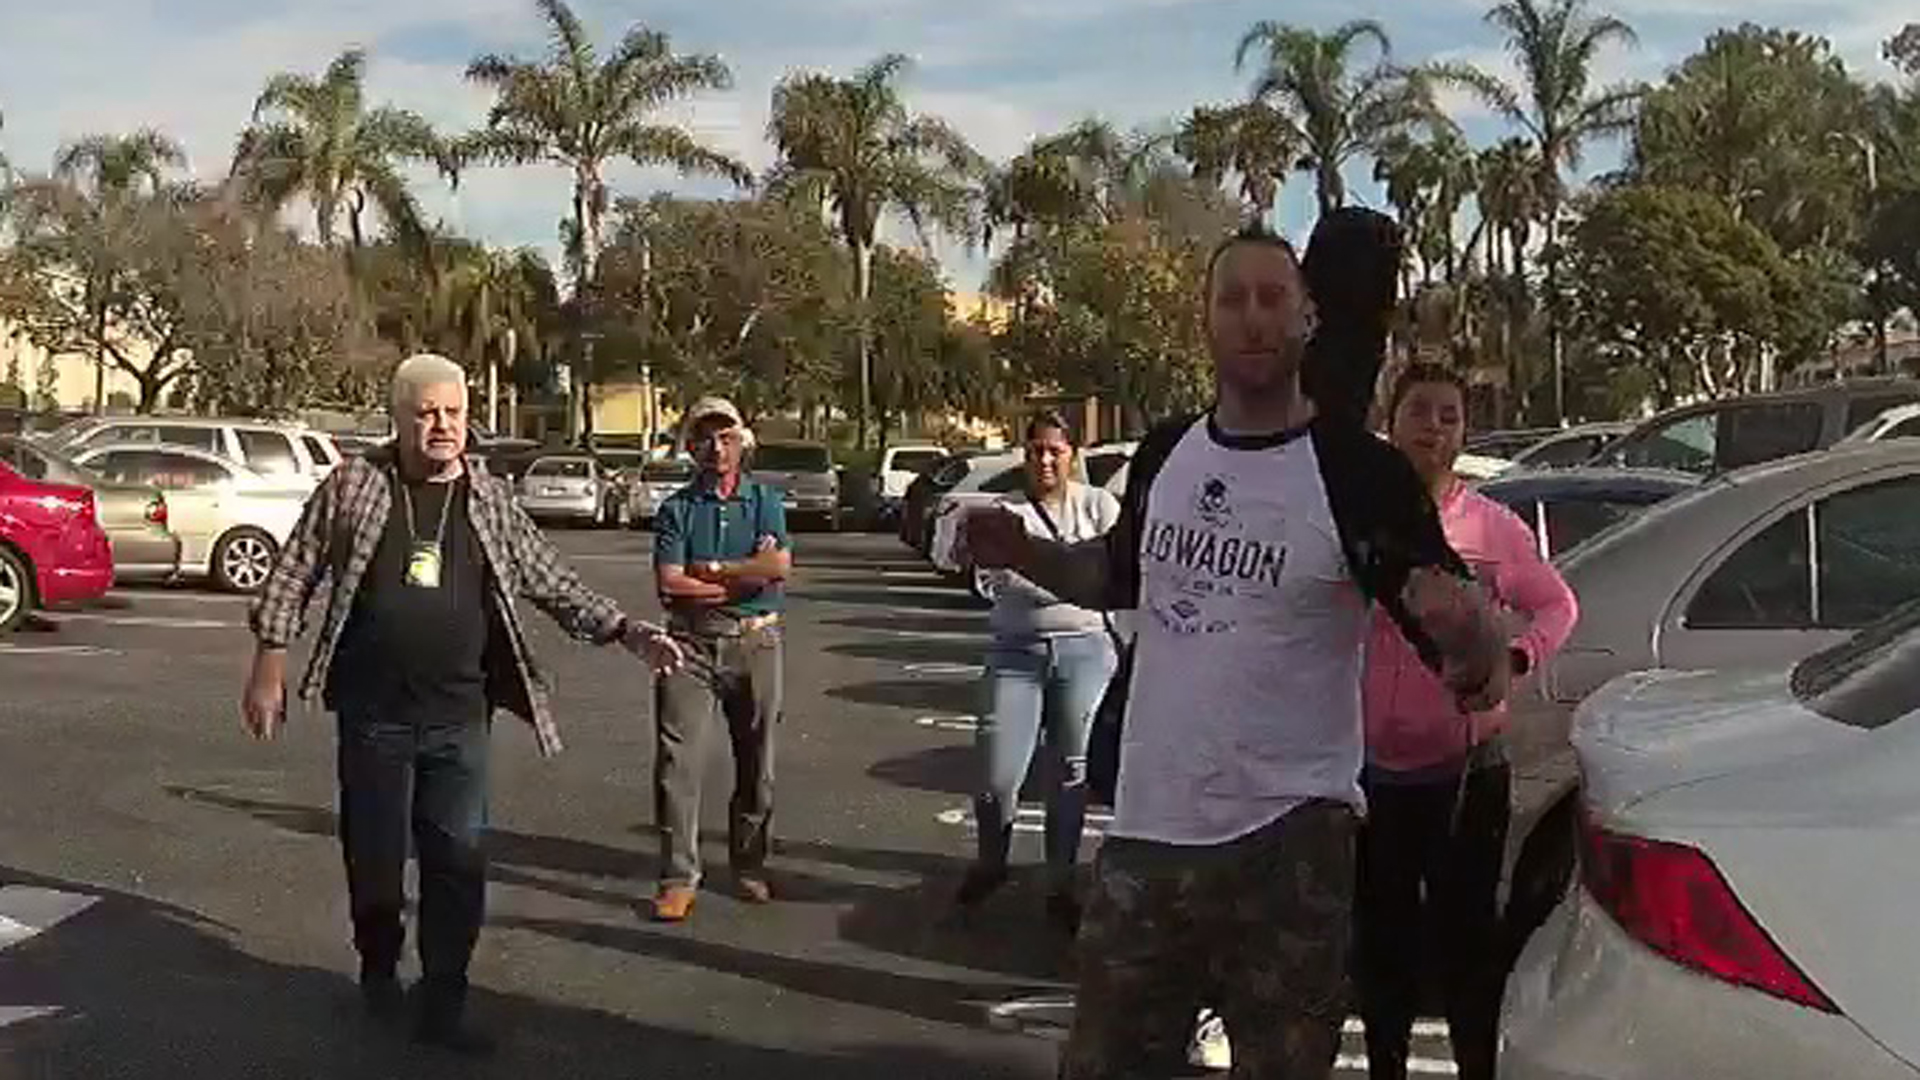 The U.S. Attorney's Office provided this still from a police body camera recording showing Farad Bell wearing a fake badge outside the Pacific View Mall in Ventura on Dec. 2, 2017.